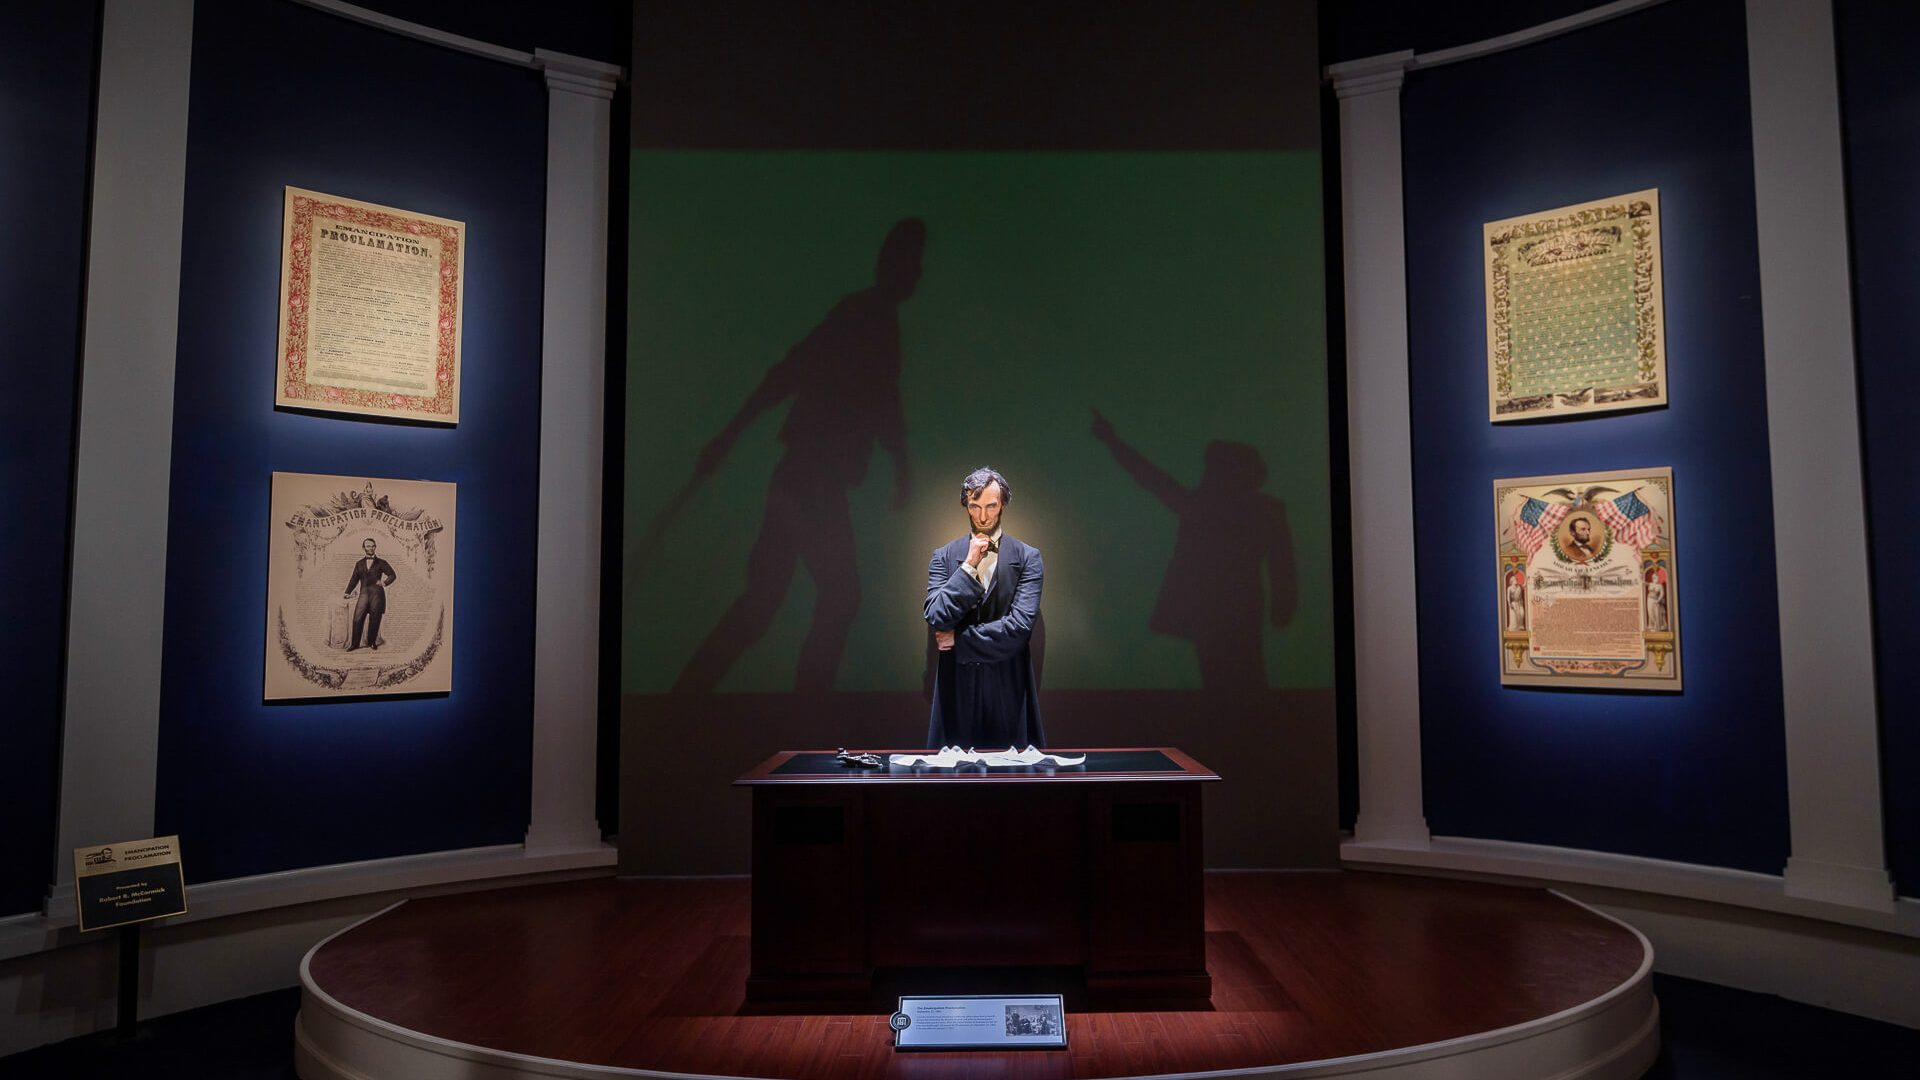 Abe Lincoln Museum in Springfield IL